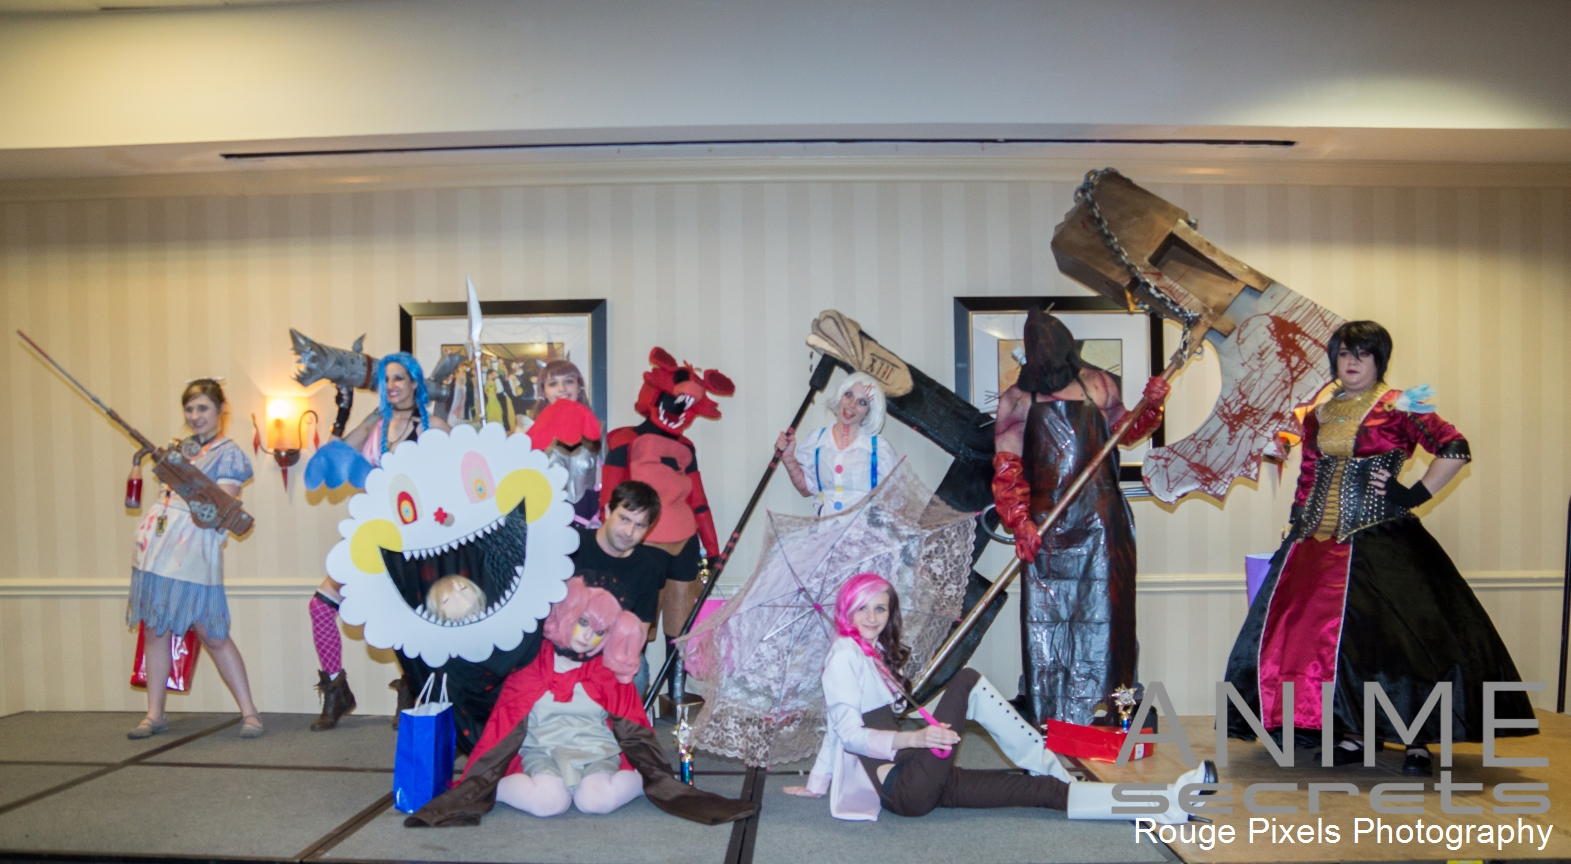 Louisianime 2015 – Cosplay Contest Photo Gallery #2